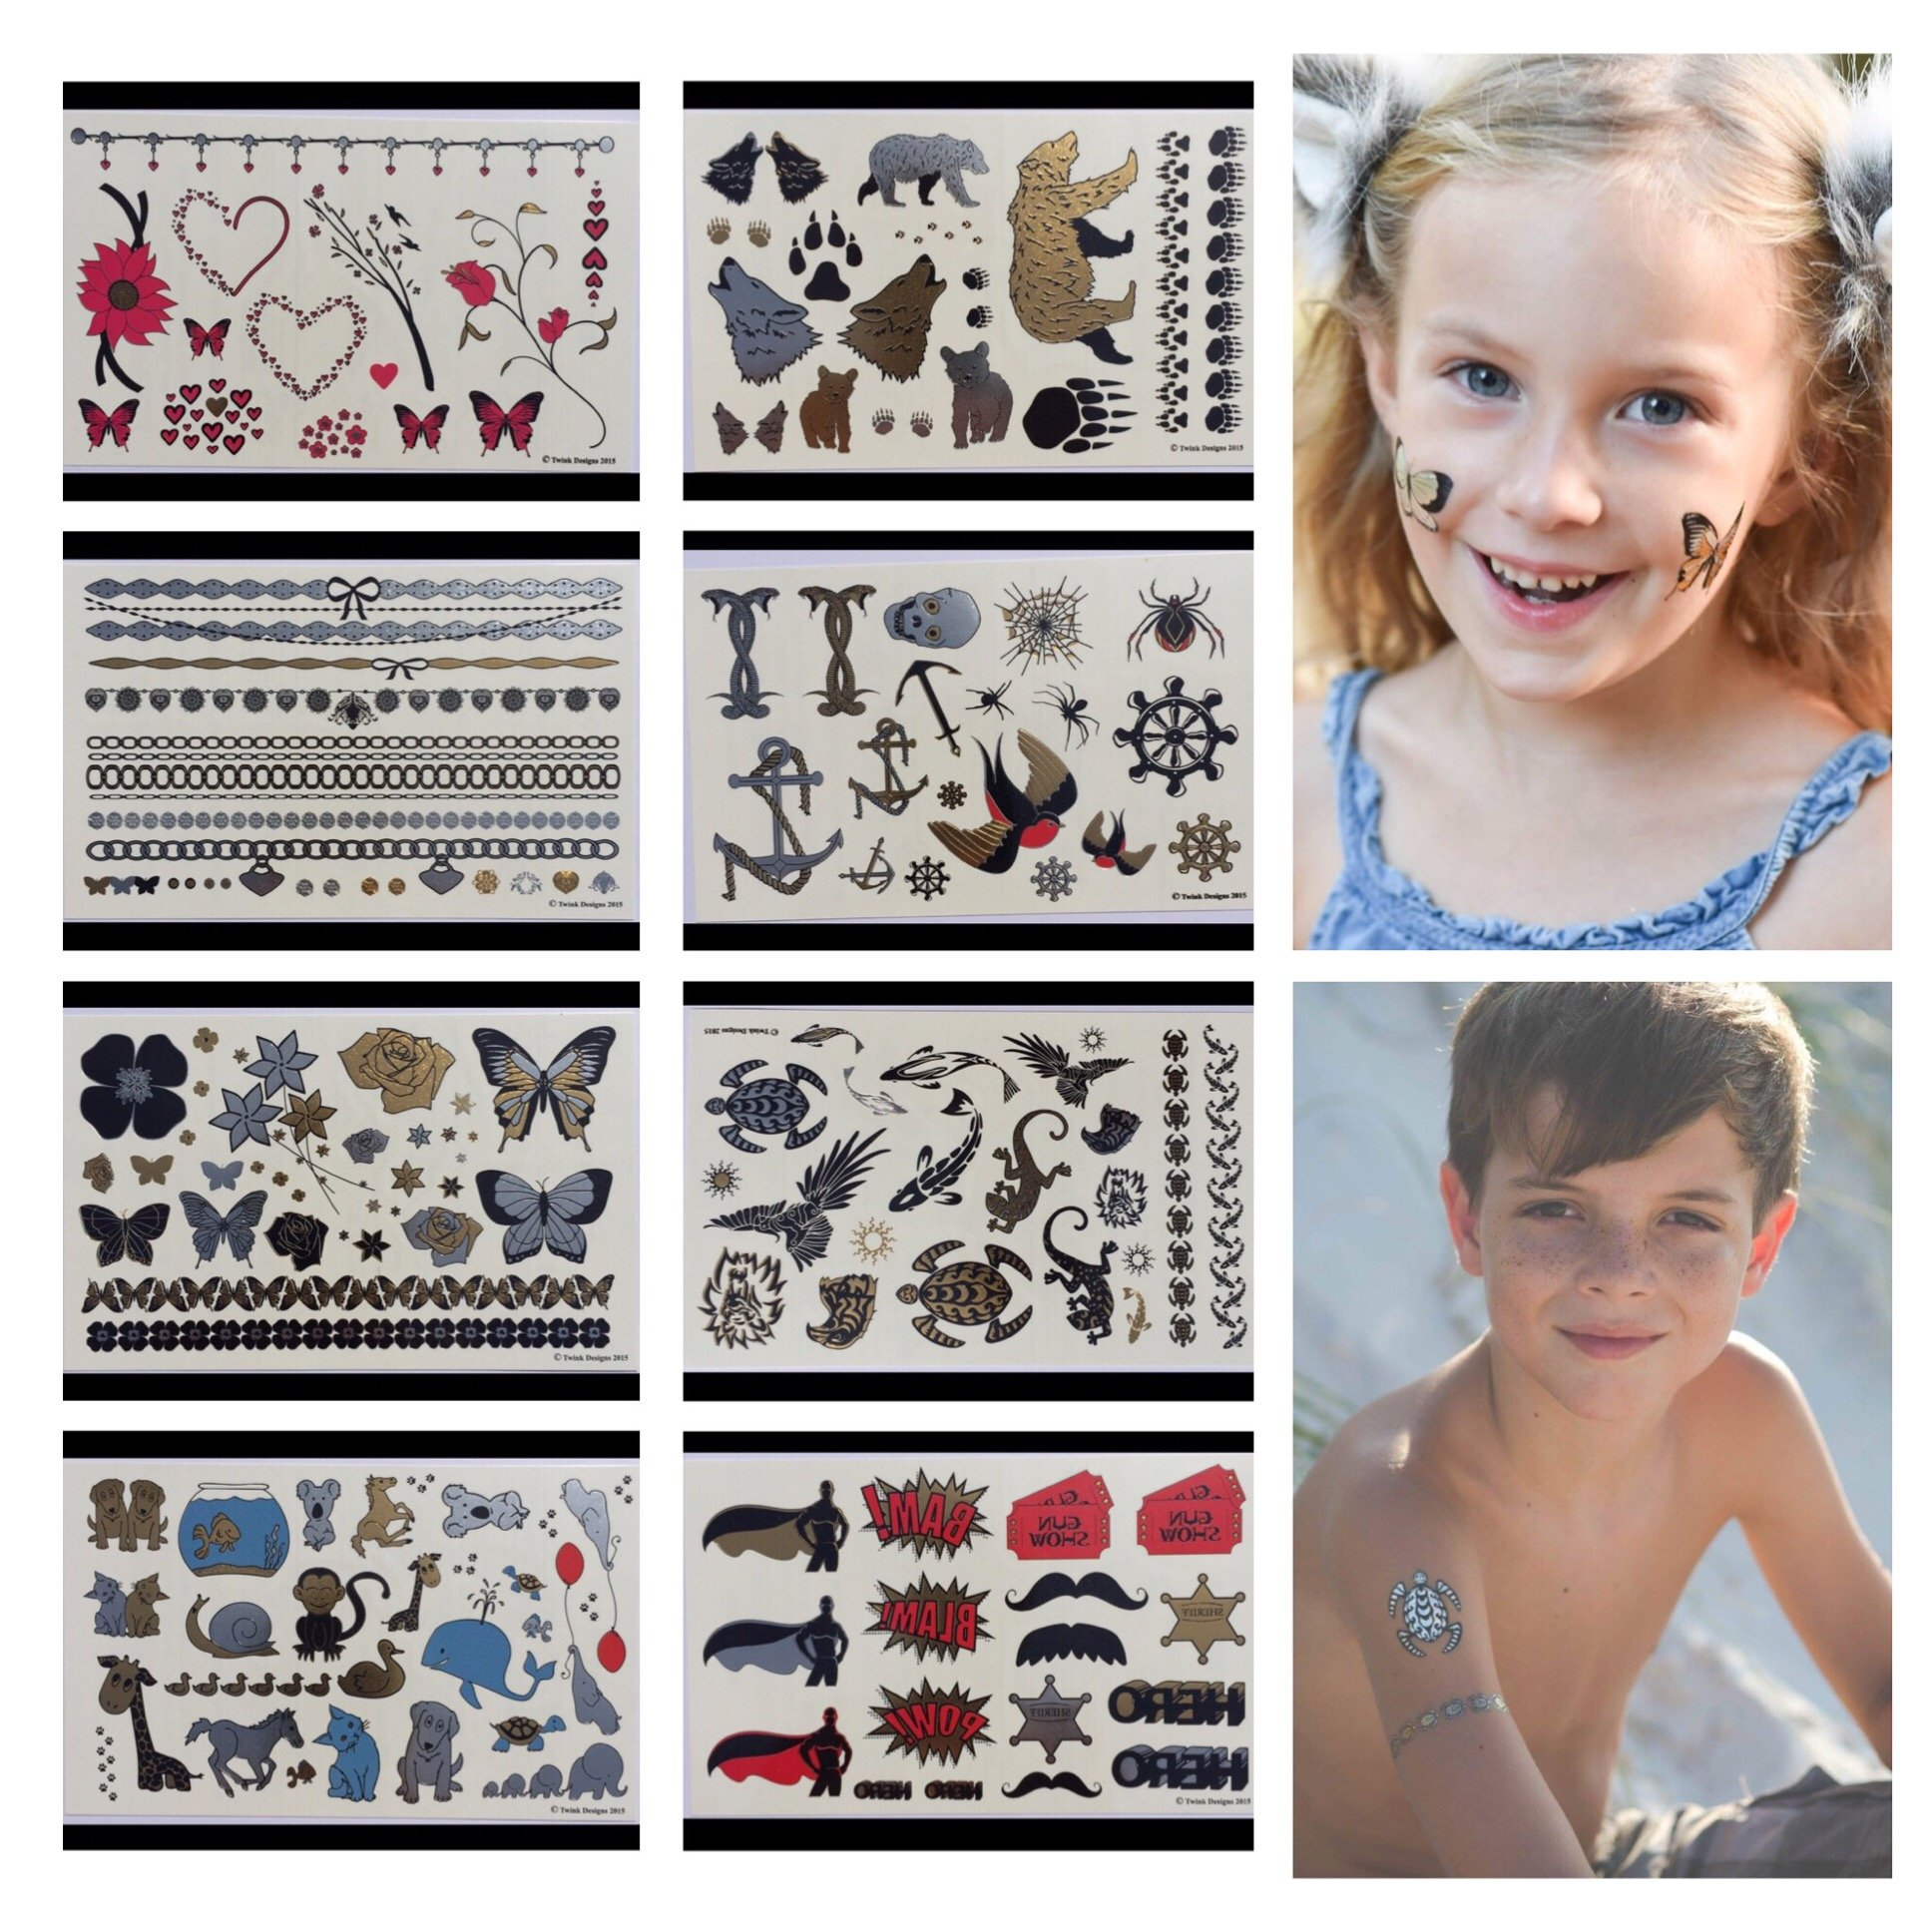 Temporary Tattoos For Kids - 166 Tattoos on 8 Sheets - Best For Party Favors Birthday Party Supplies Stocking Stuffers and goodie bags - 8 Pages of Metallic Temporary Tattoos for Boys and Girls